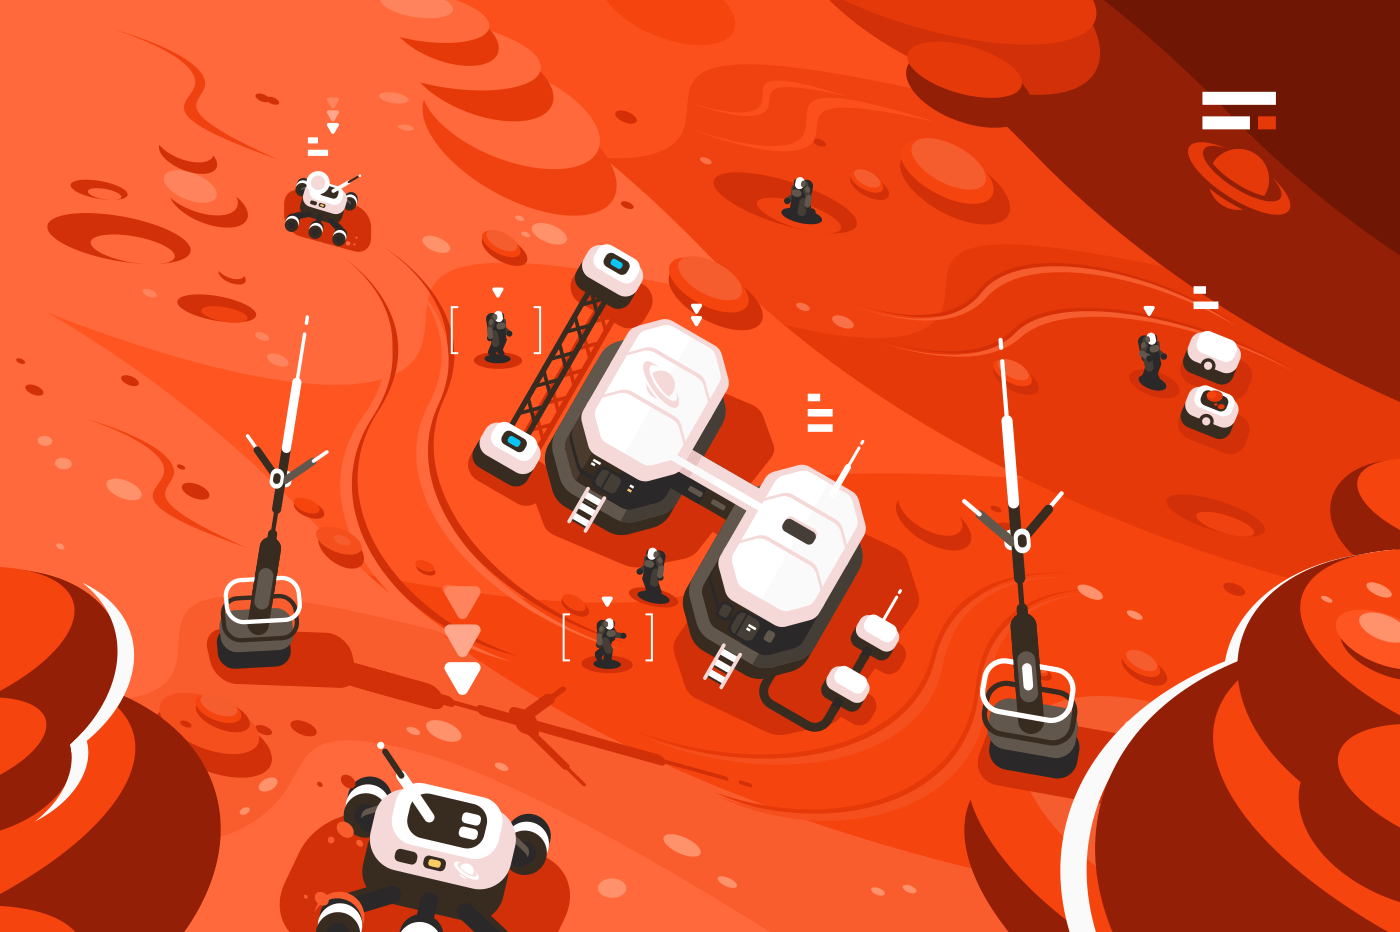 Mars planet station orbit base. Expedition on alien red planet. Martian colony space landscape. Flat. Vector illustration.